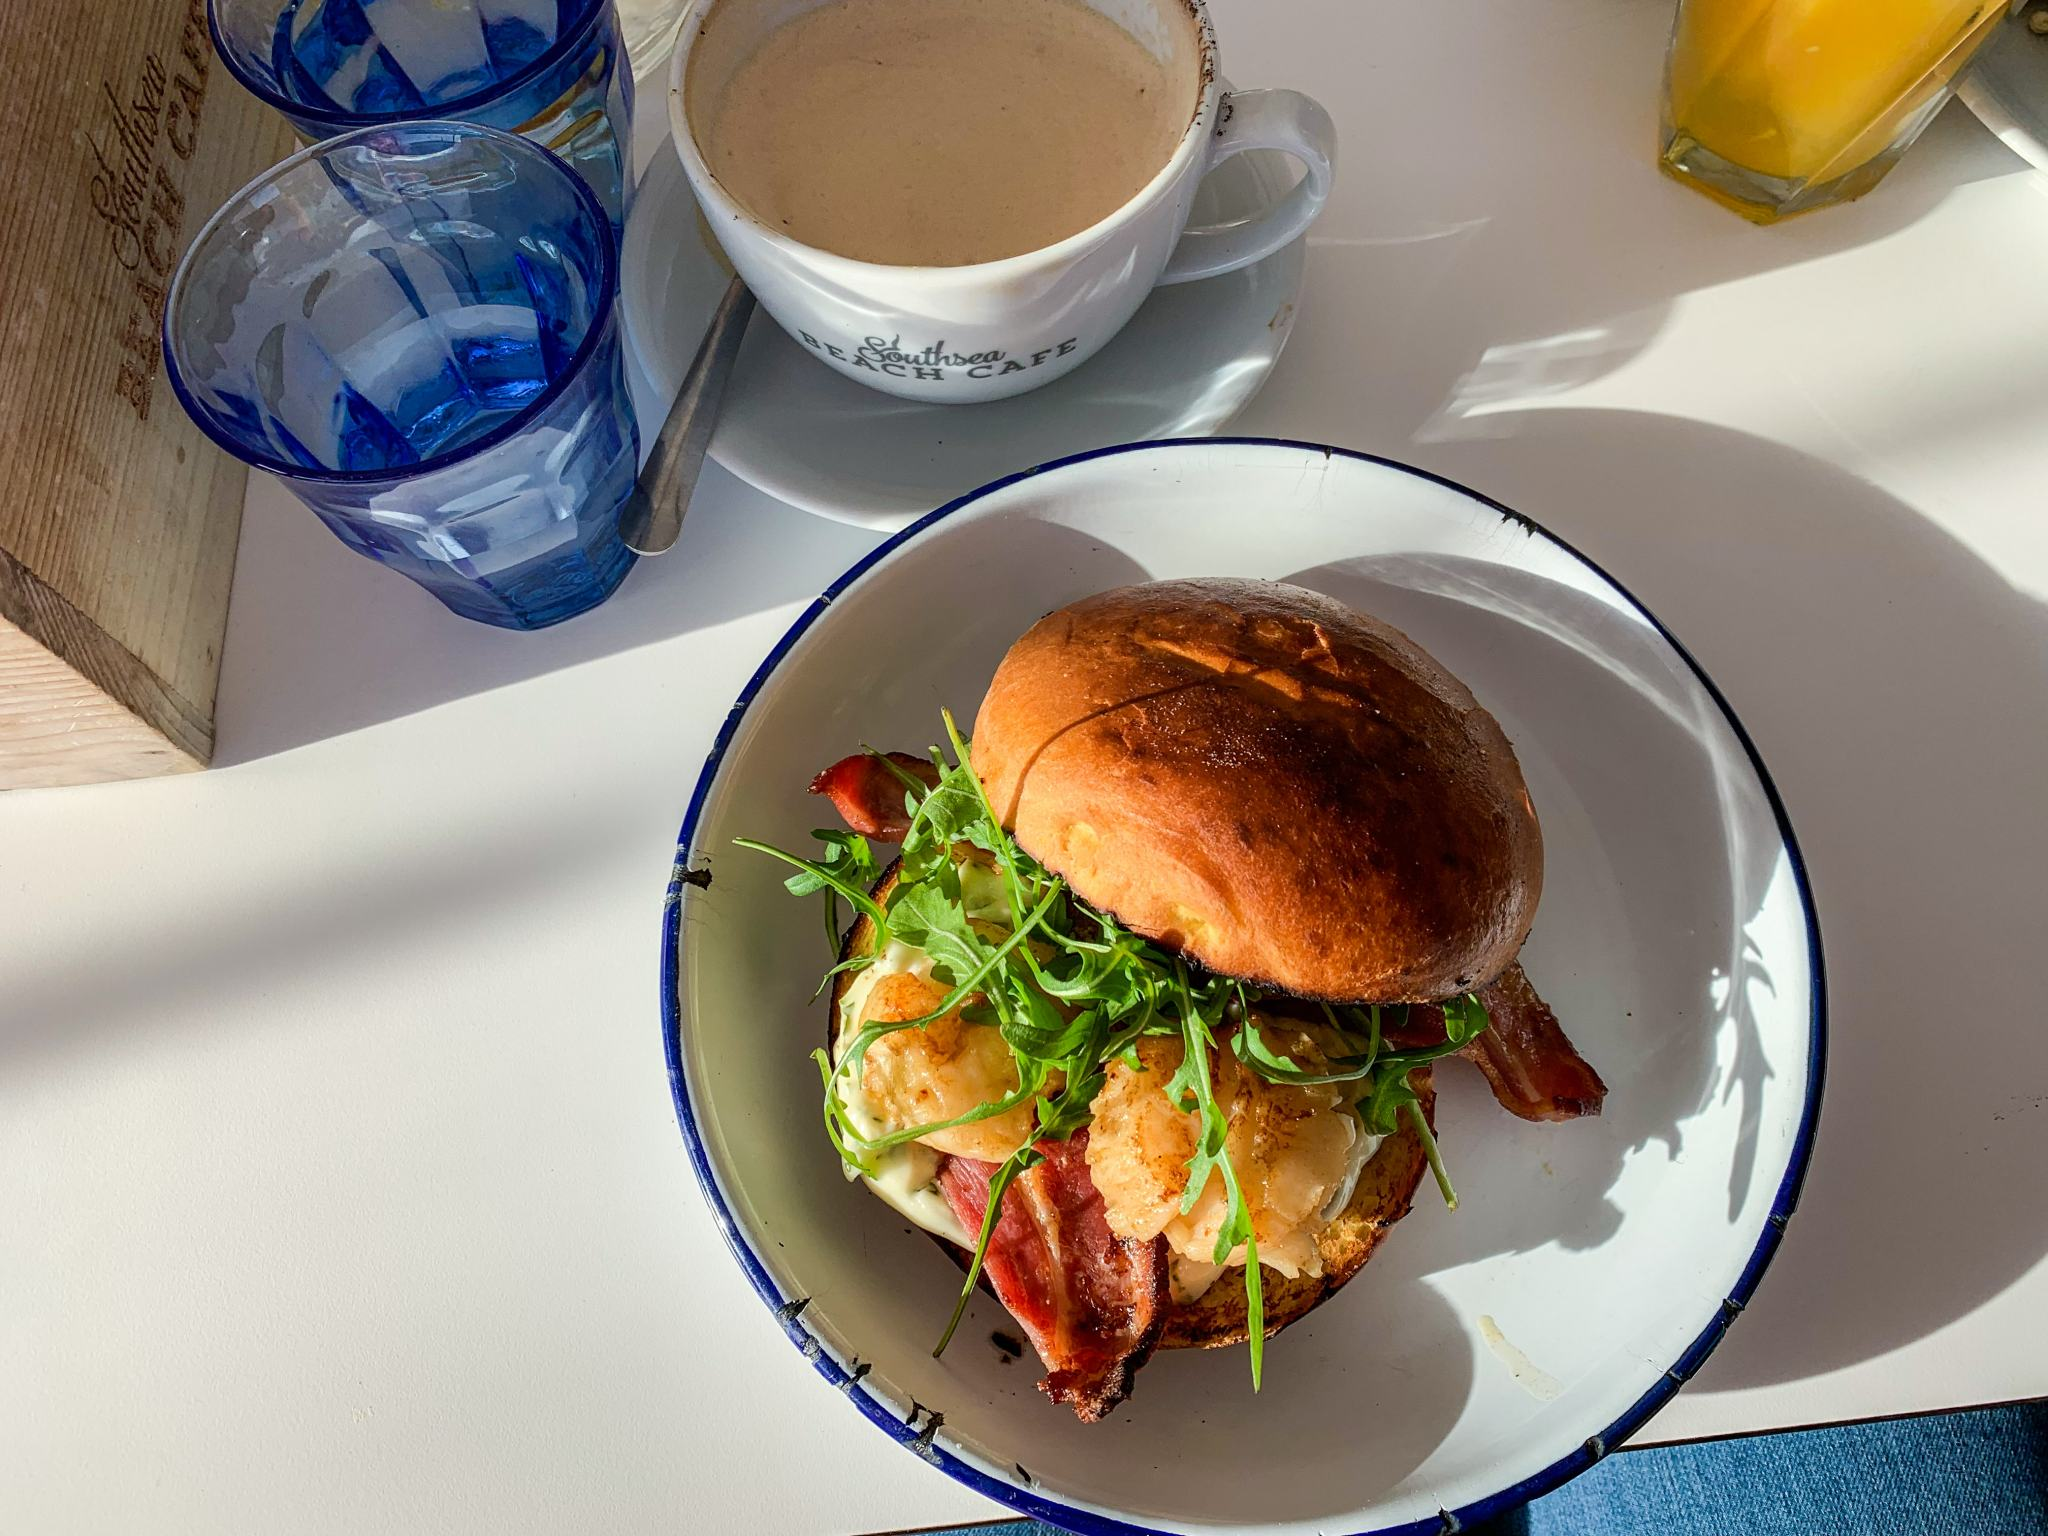 scallop and bacon bap - breakfasts in hampshire